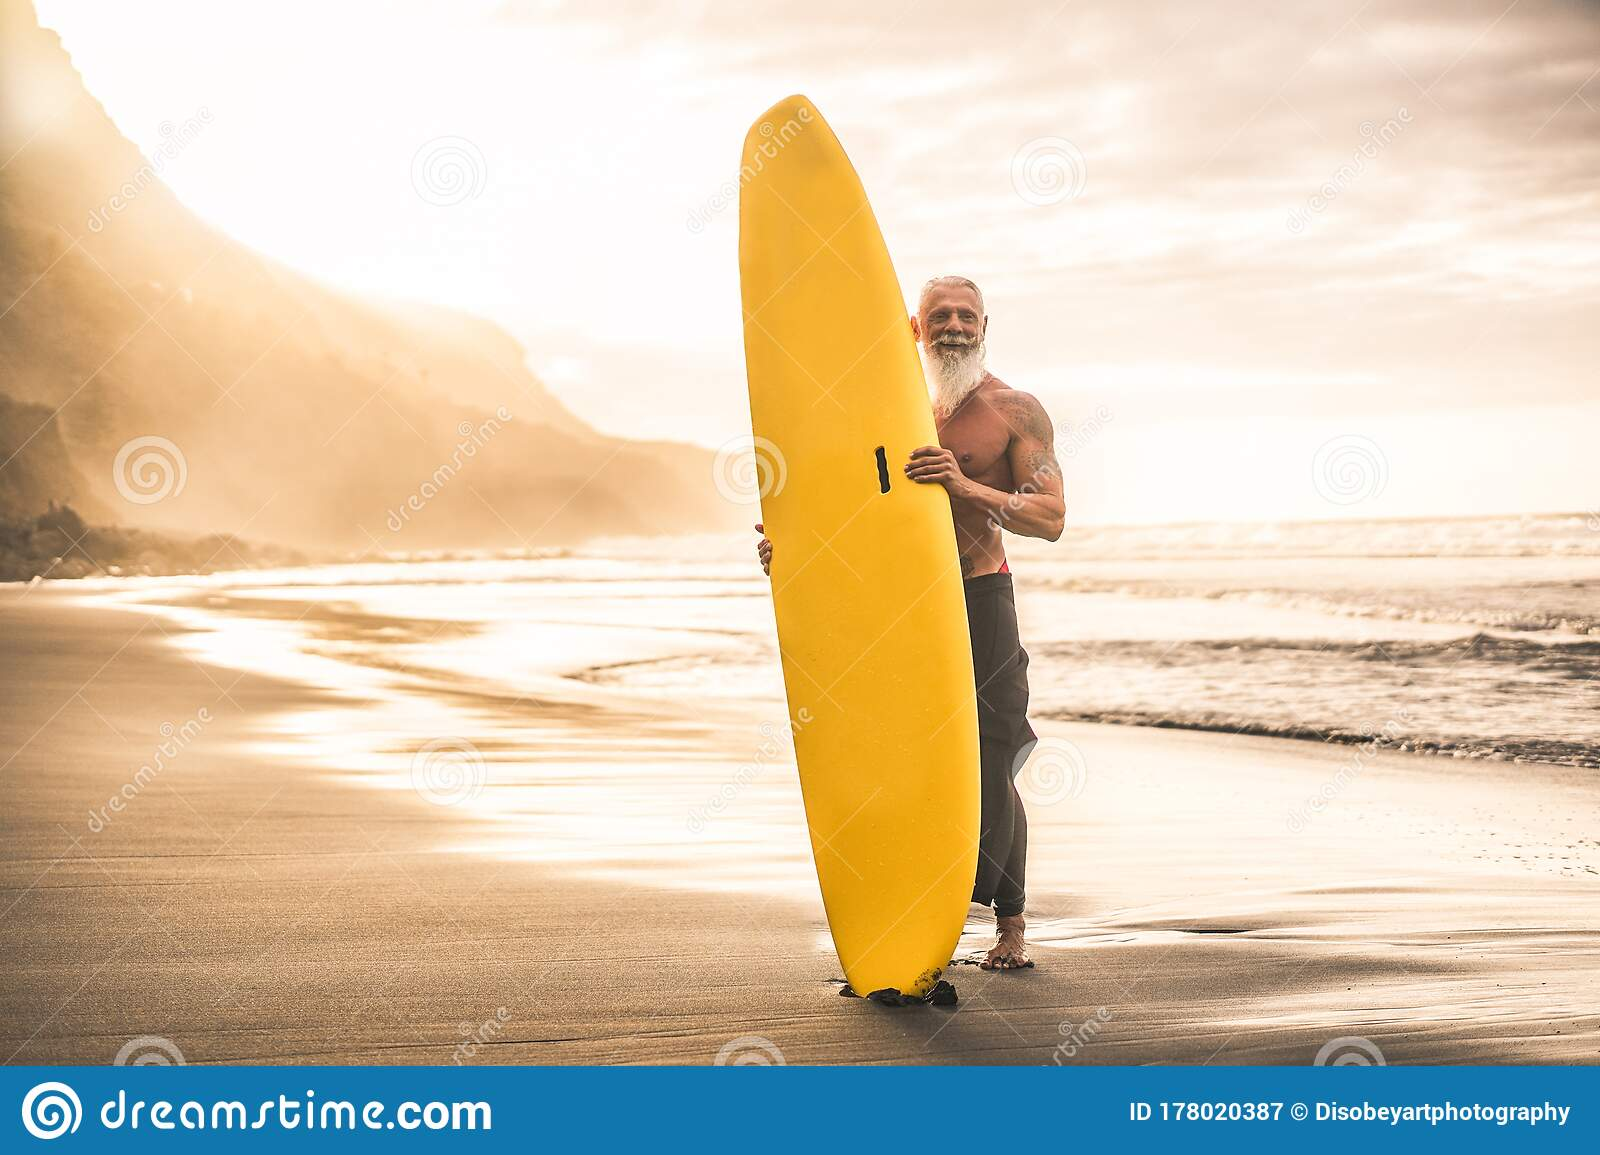 1 650 Old Photo Surfer Photos Free Royalty Free Stock Photos From Dreamstime